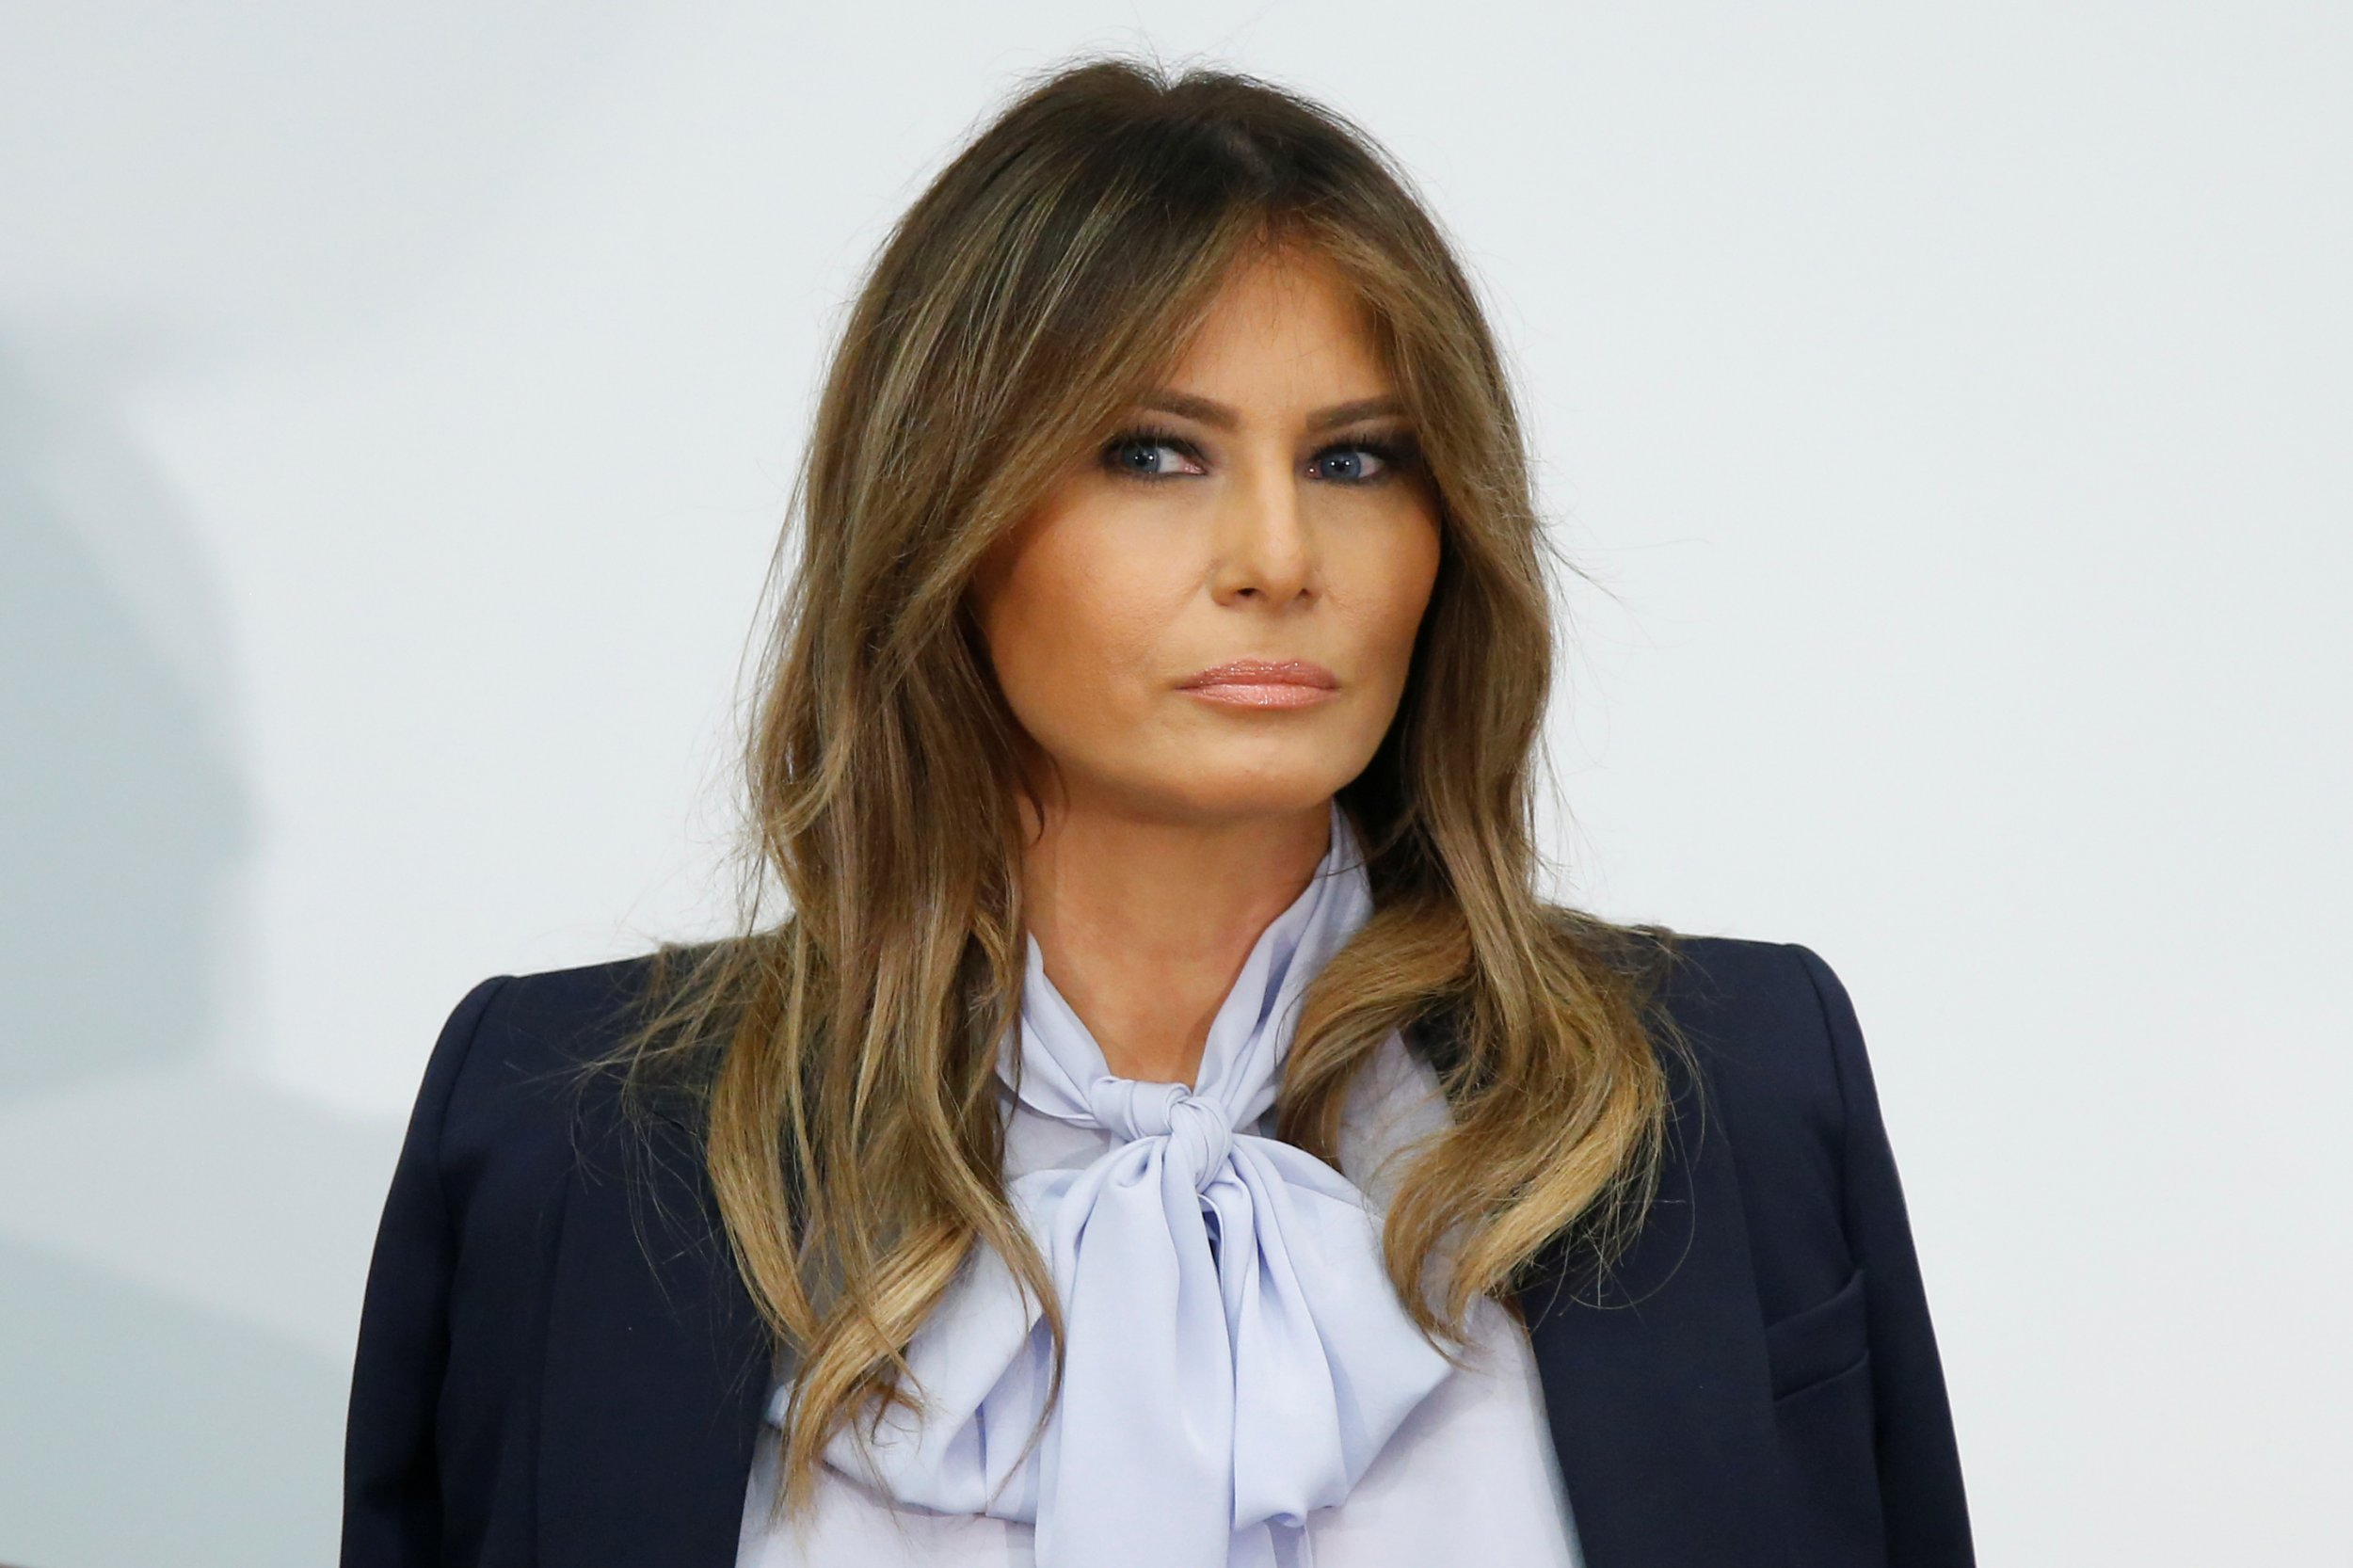 Melania Trump, spokeswoman, Hatch Act, Stephanie Grisham